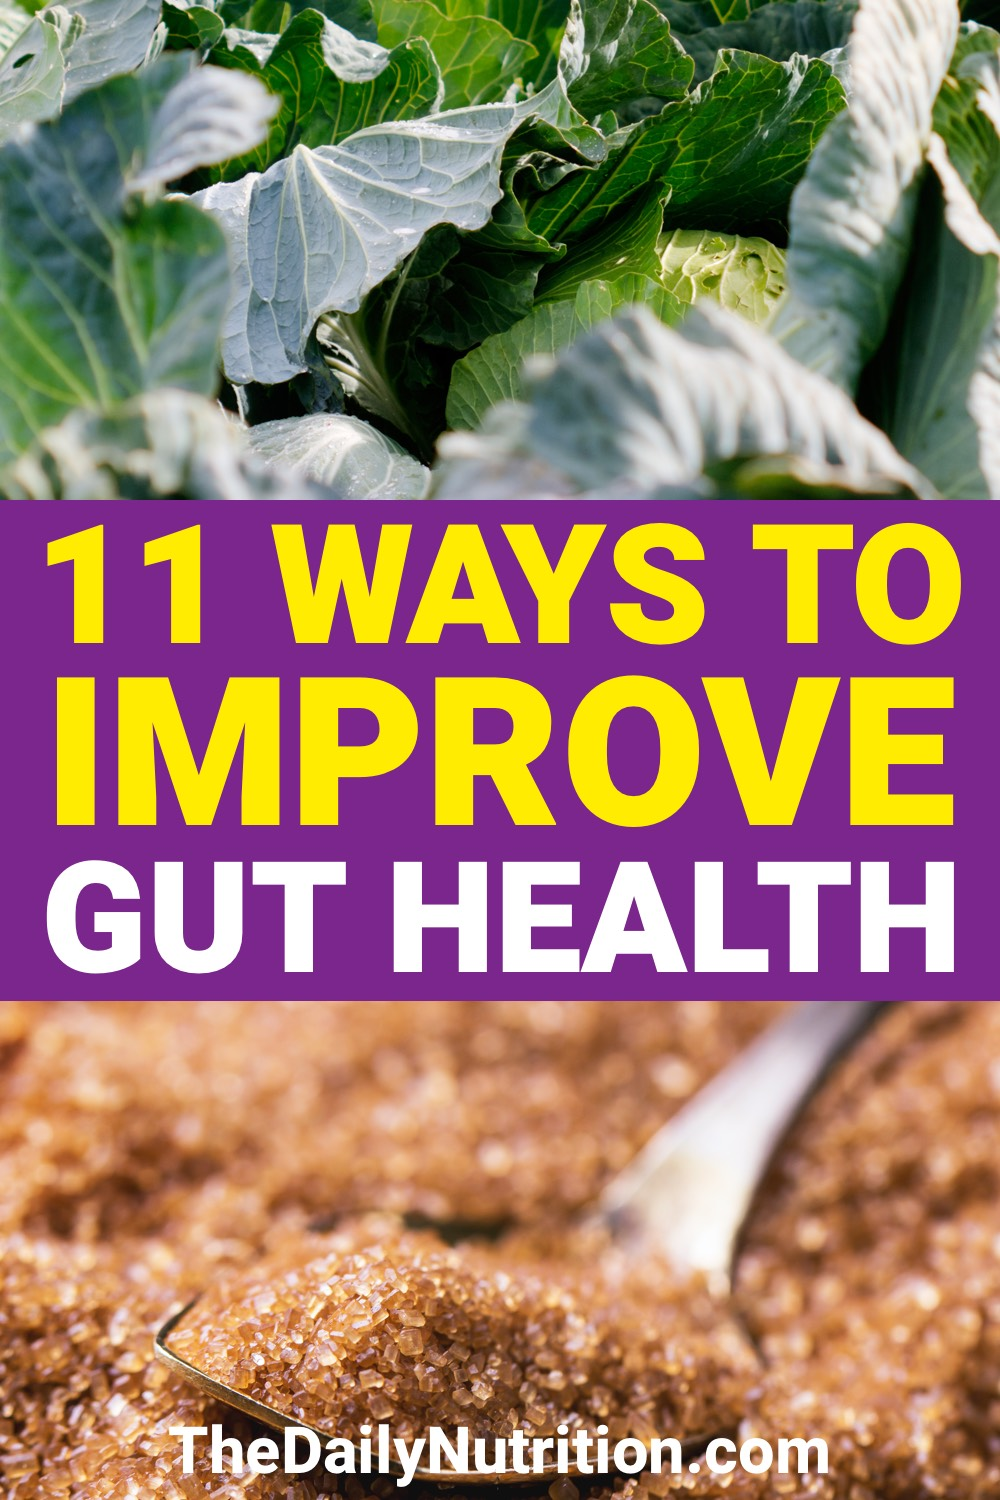 Improving gut health doesn't have to be difficult. It can be done relatively quickly as well. Here are 11 ways to improve gut health.